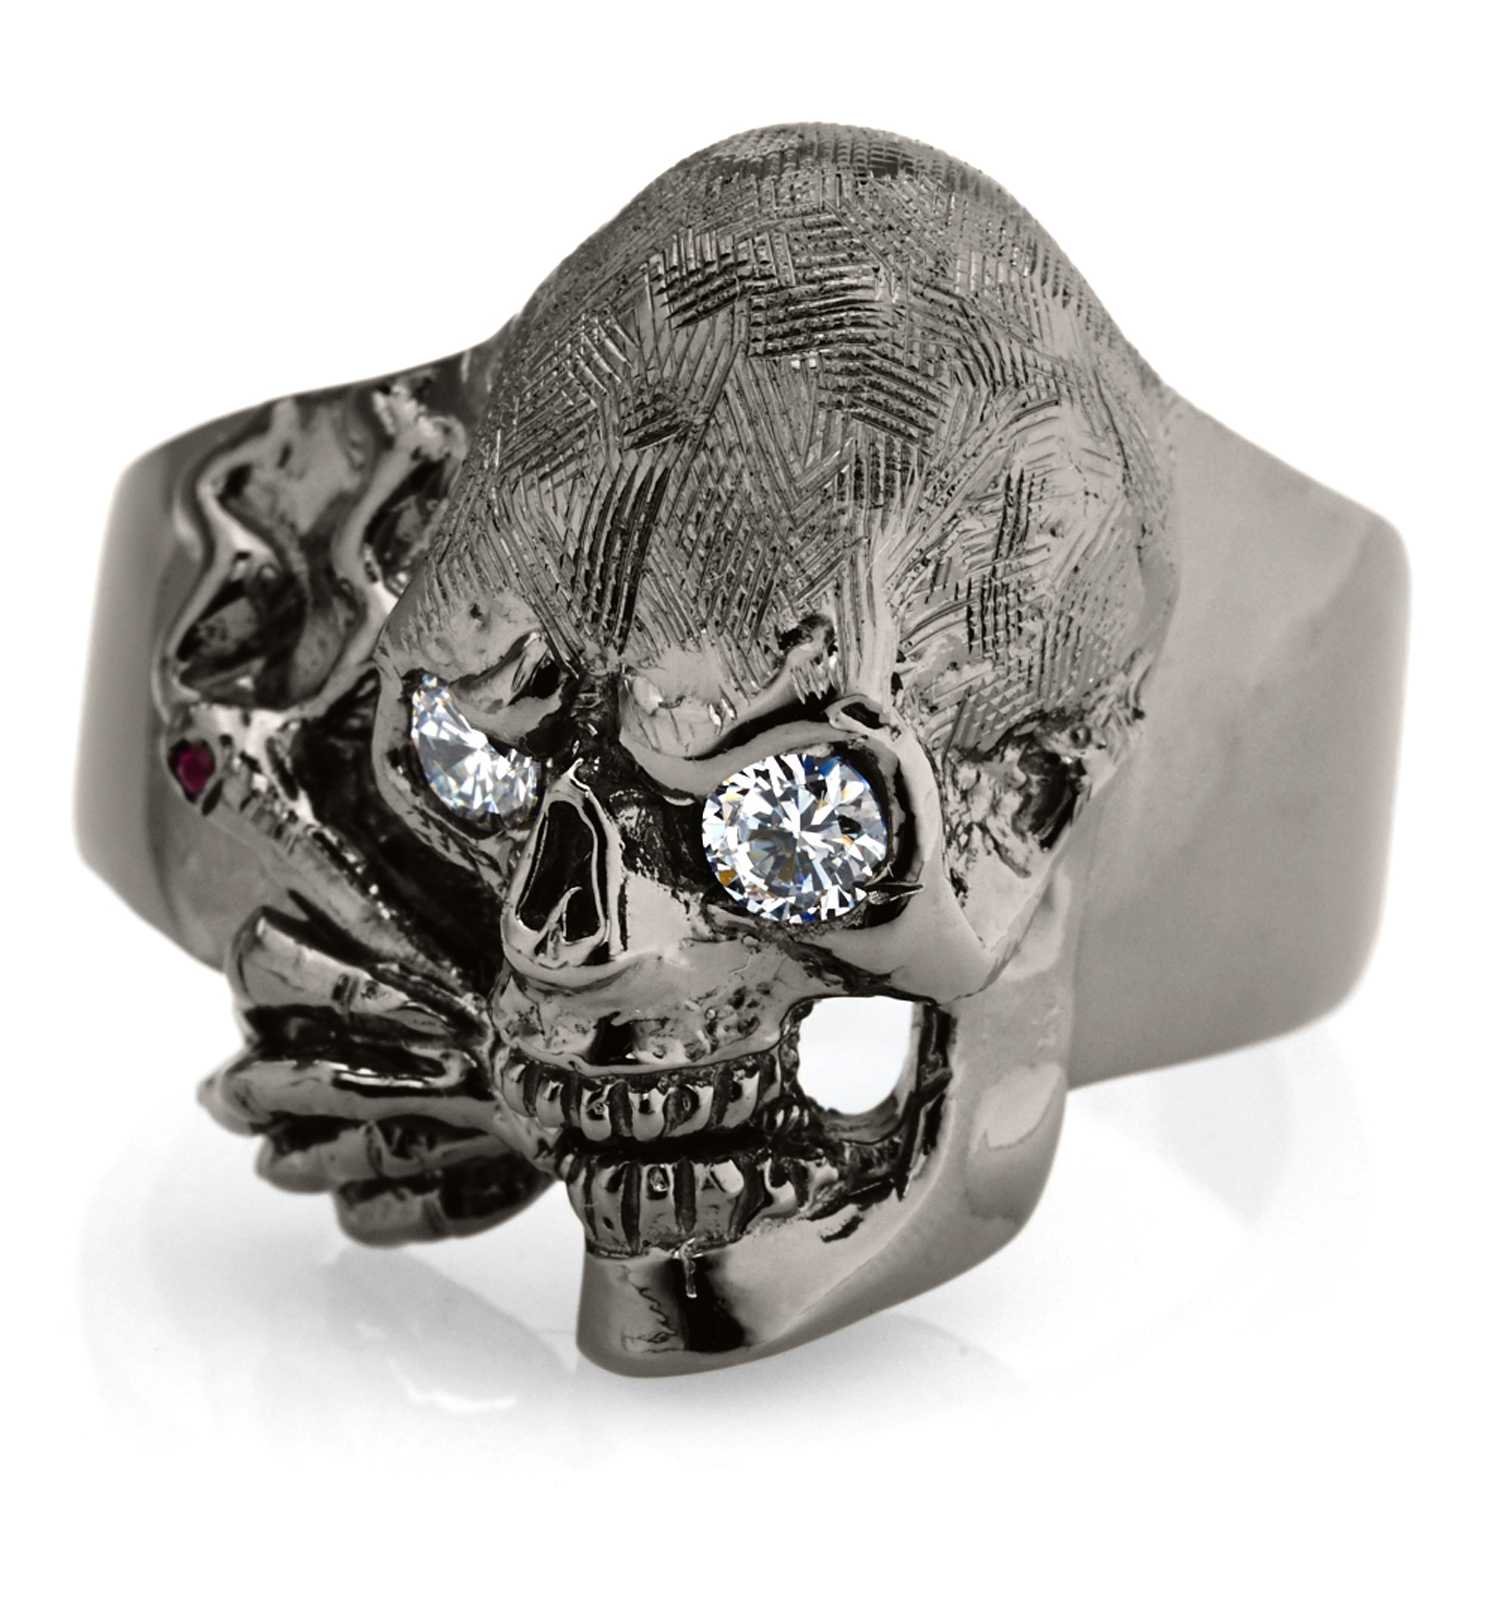 RG100BK-WHT The Clarence Catskills skull ring is cast in 27 grams 999 Sterling Silver with white synthetic stones, designed by Steve Soffa